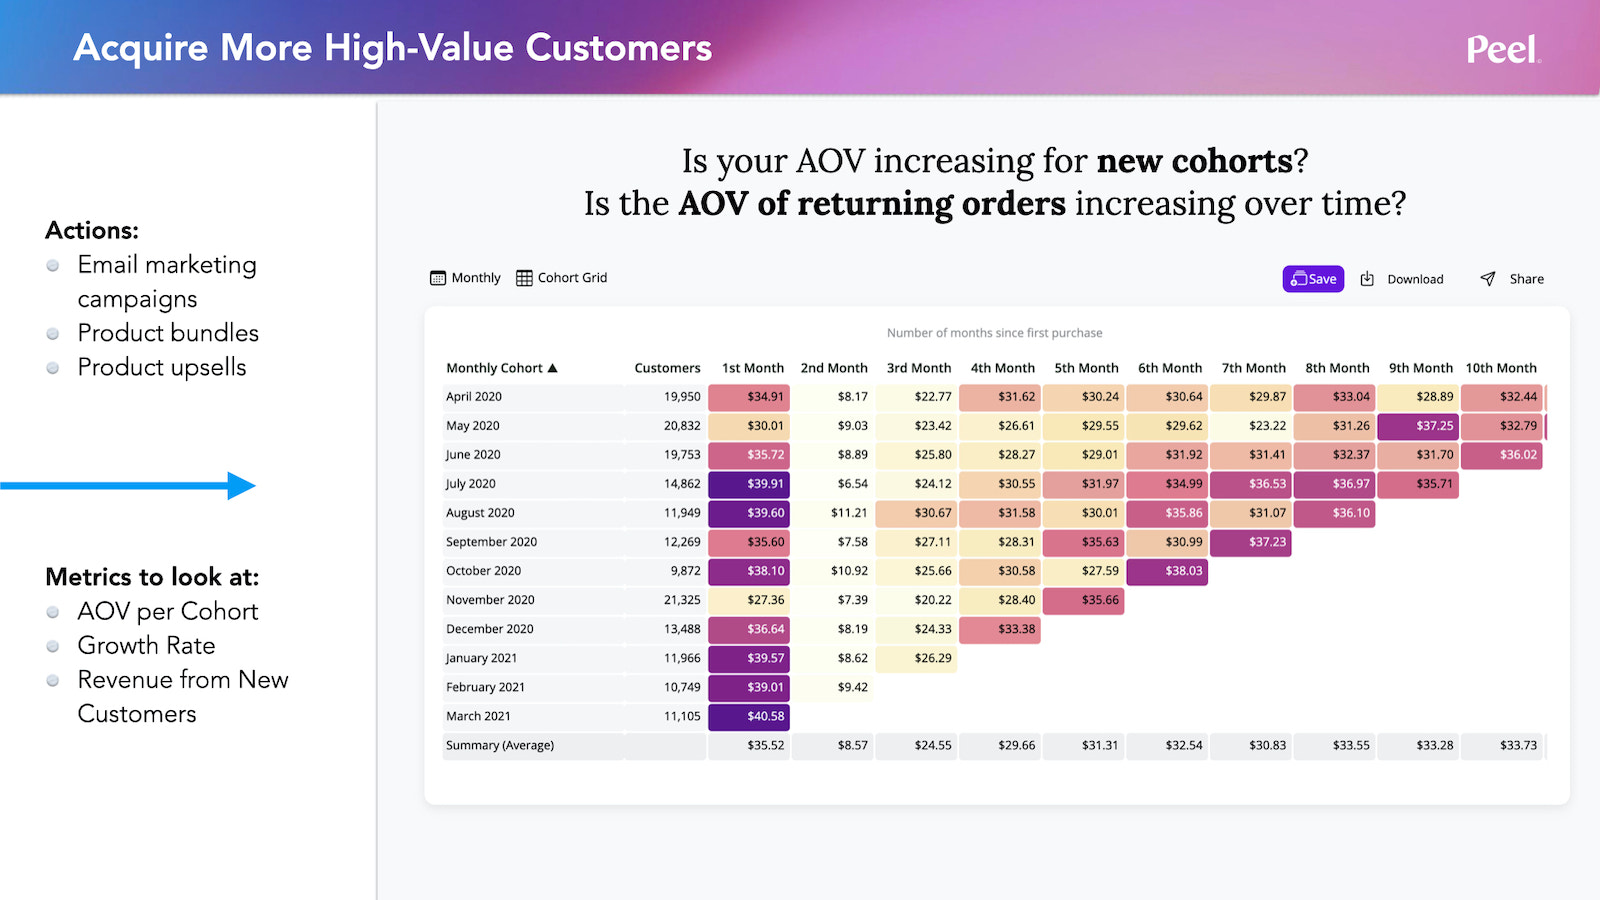 Acquire More High-Value Customers